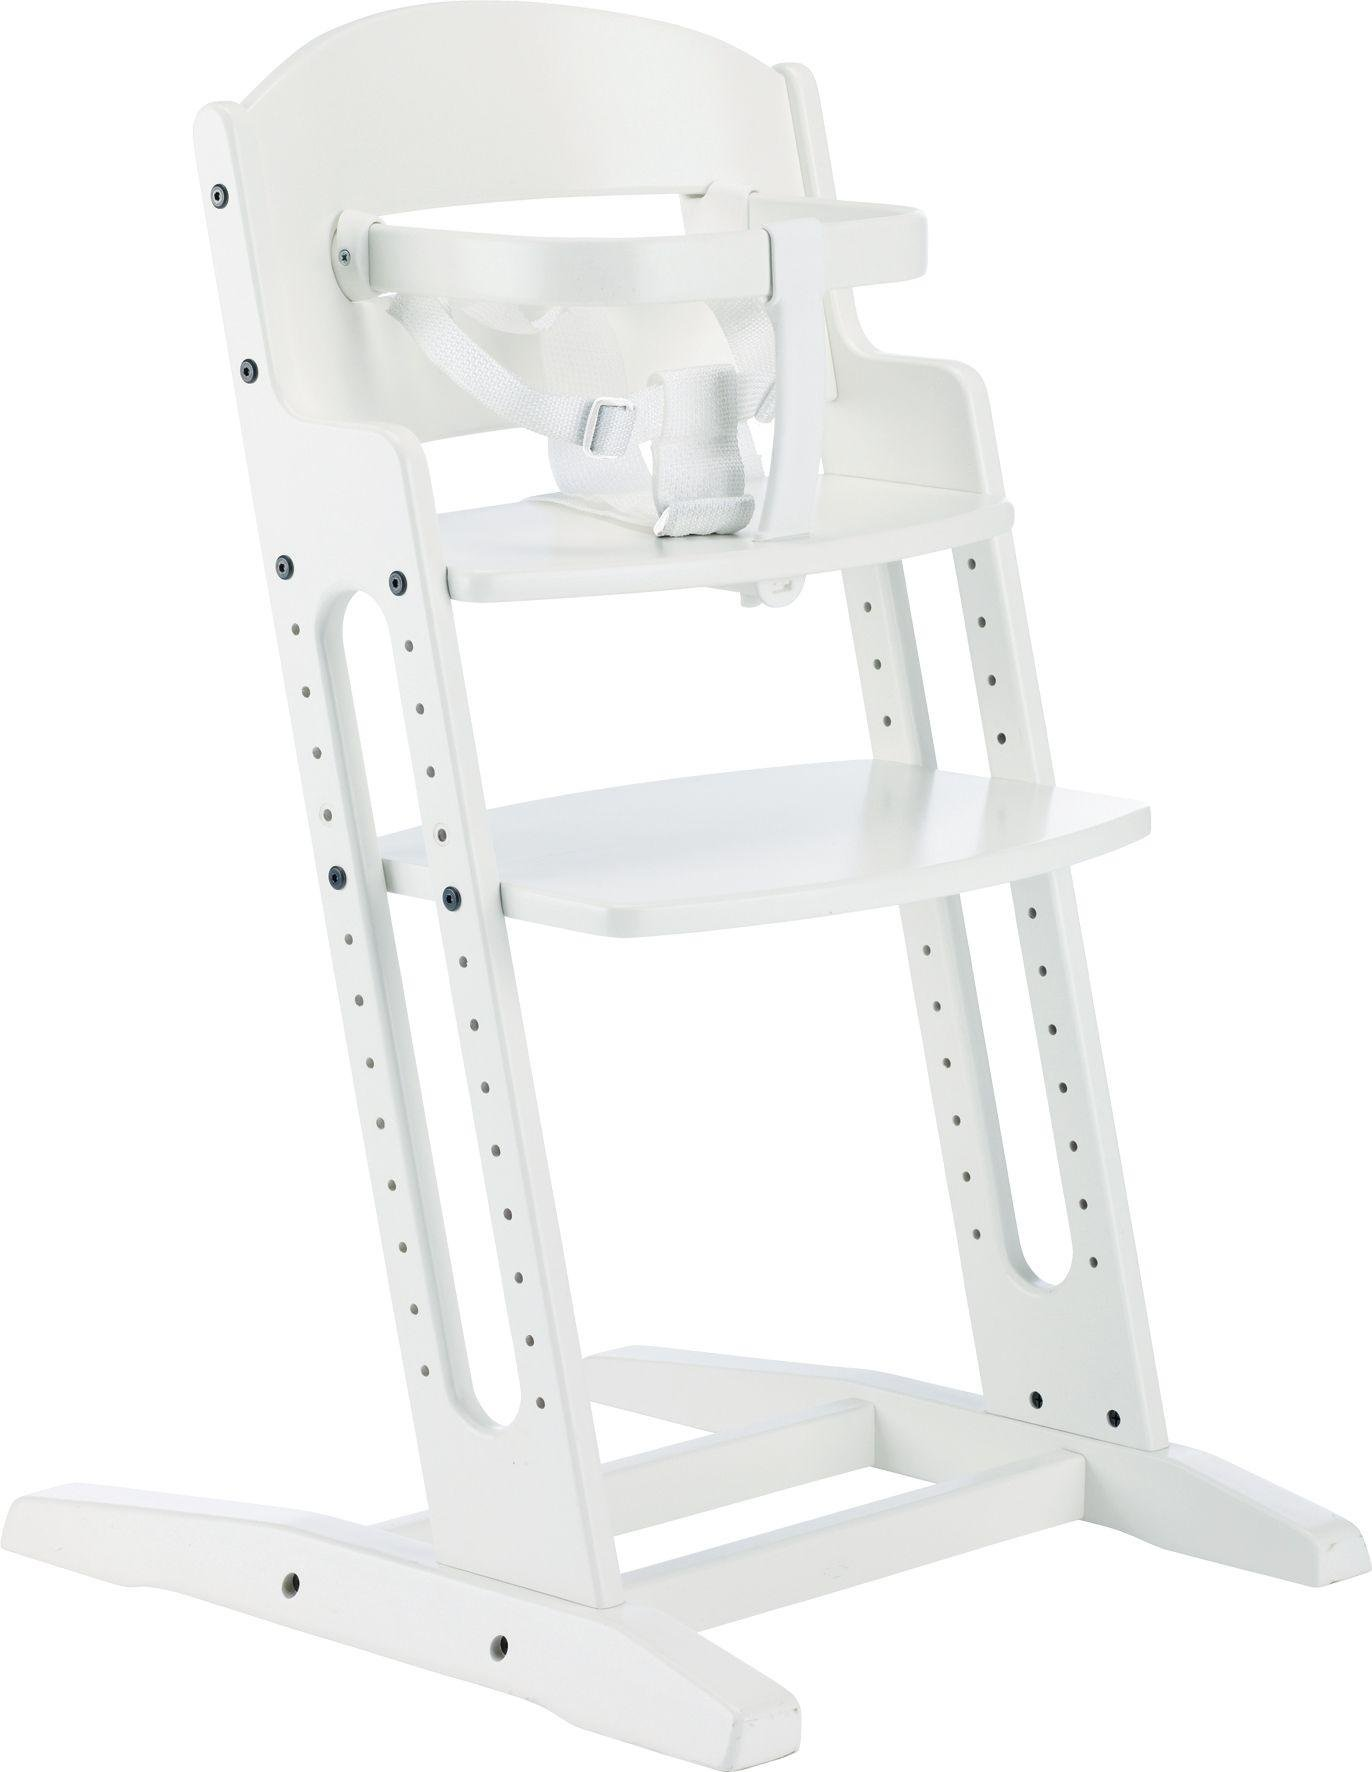 Image of BabyDan - Danchair - Highchair - White